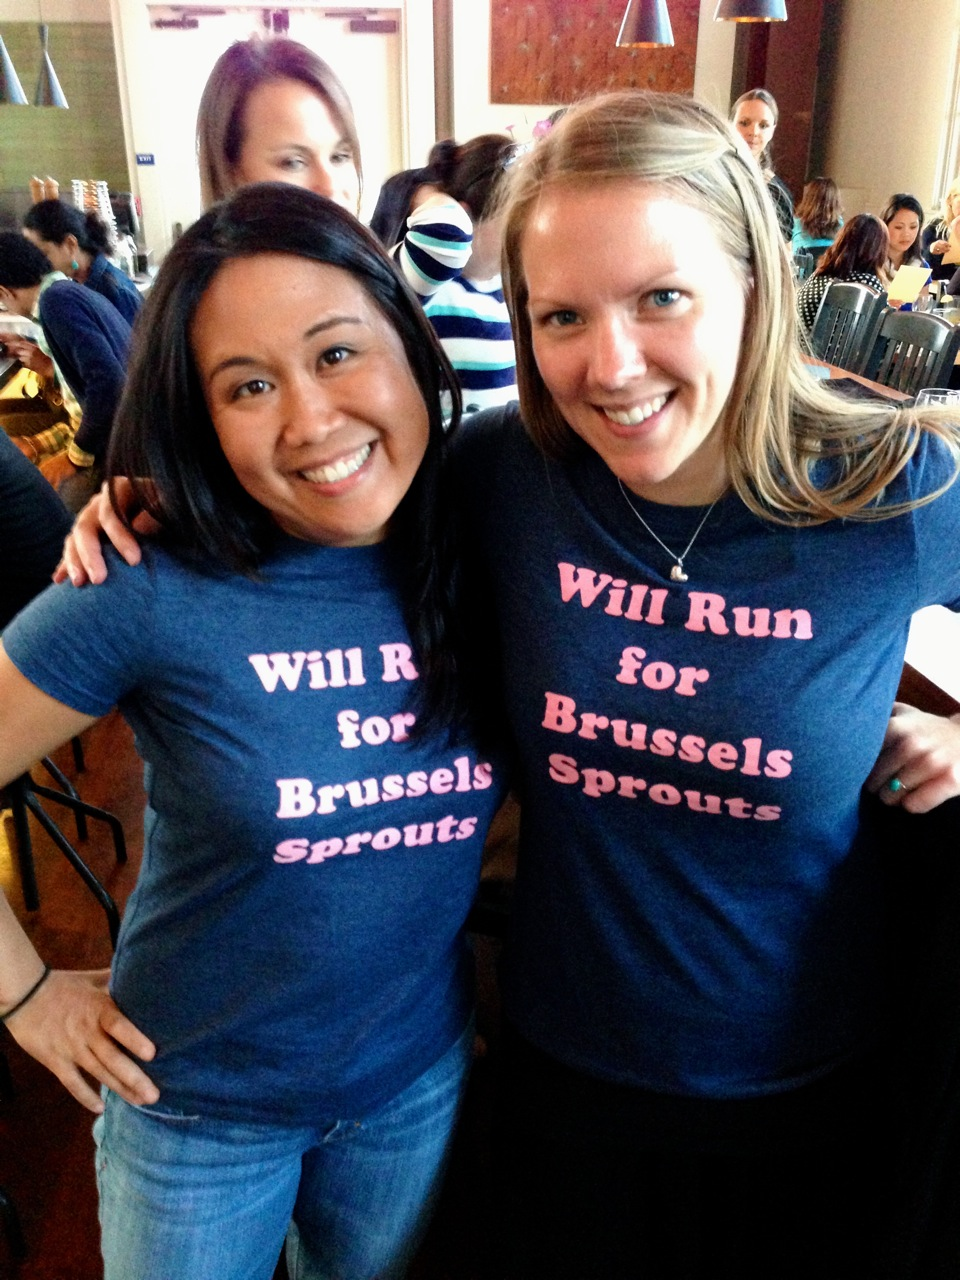 We'll Run for Brussels Sprouts!